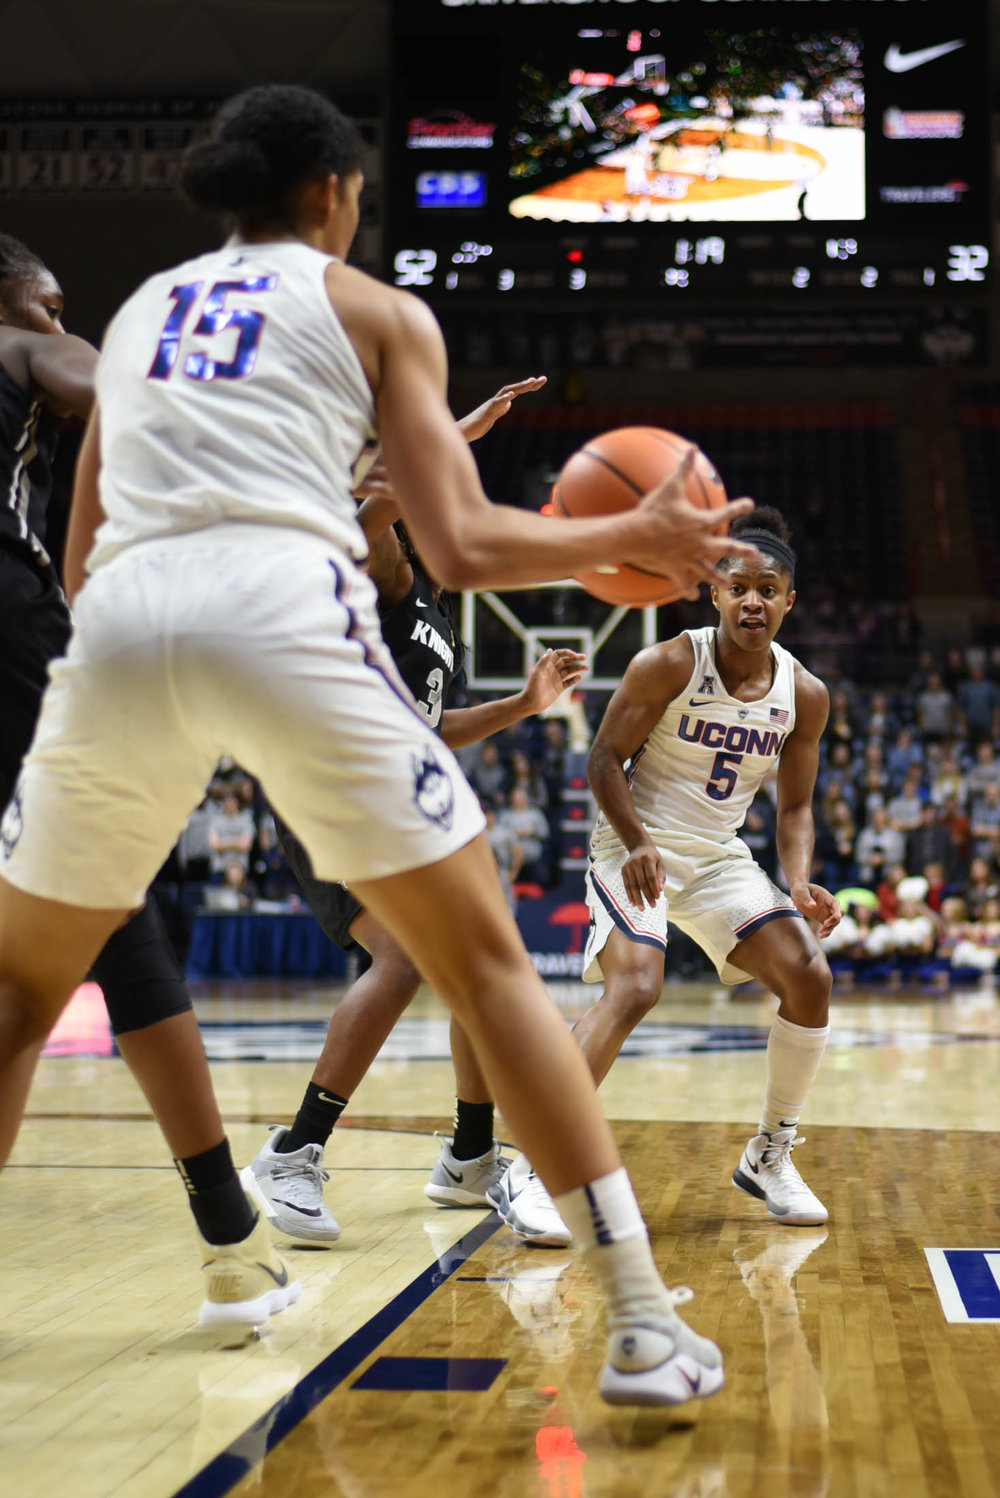 UConn forward Gabby Williams receives a pass from Crystal Dangerfield in the Huskies' 80-44 win over the UCF Knights on Tuesday, Jan. 9 at Gampel Pavilion in Storrs, Connecticut. (Charlotte Lao, Associate Photo Editor/The Daily Campus)